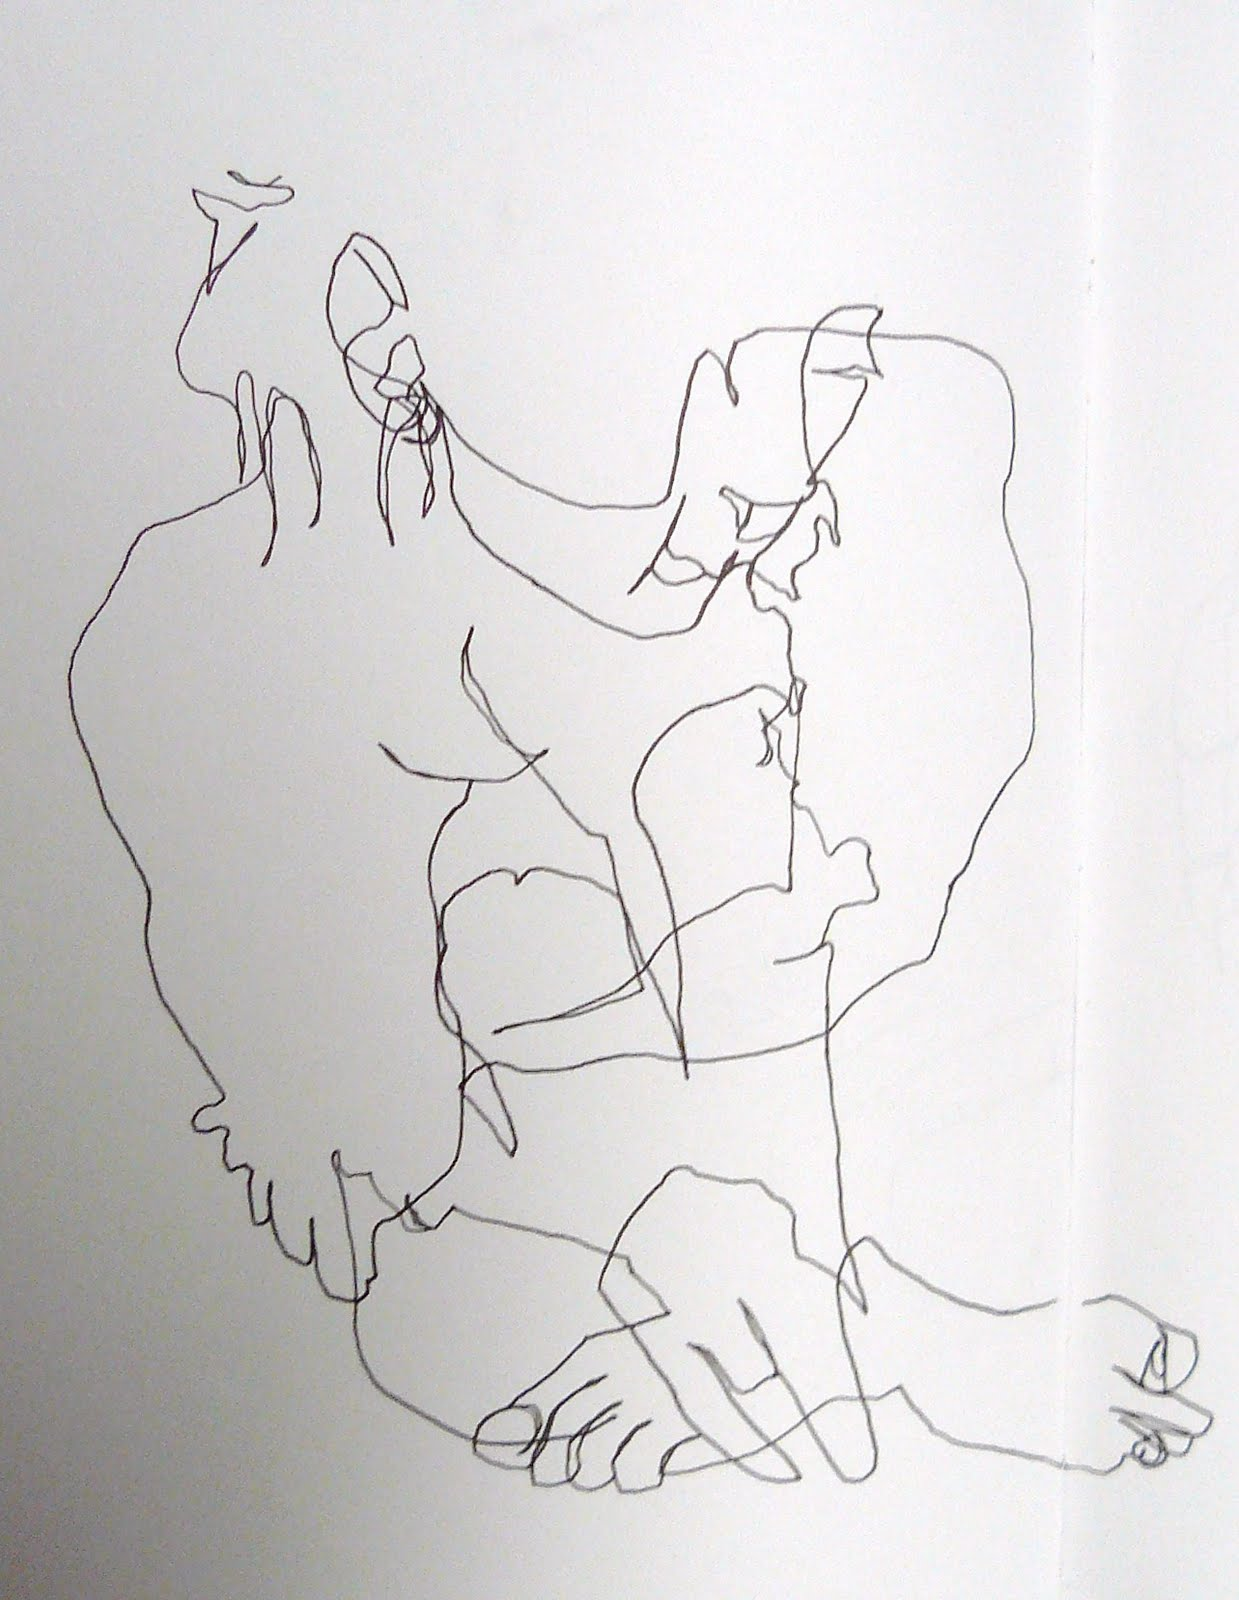 Contour Line Drawing Is : Sharon draws blind contour line drawing